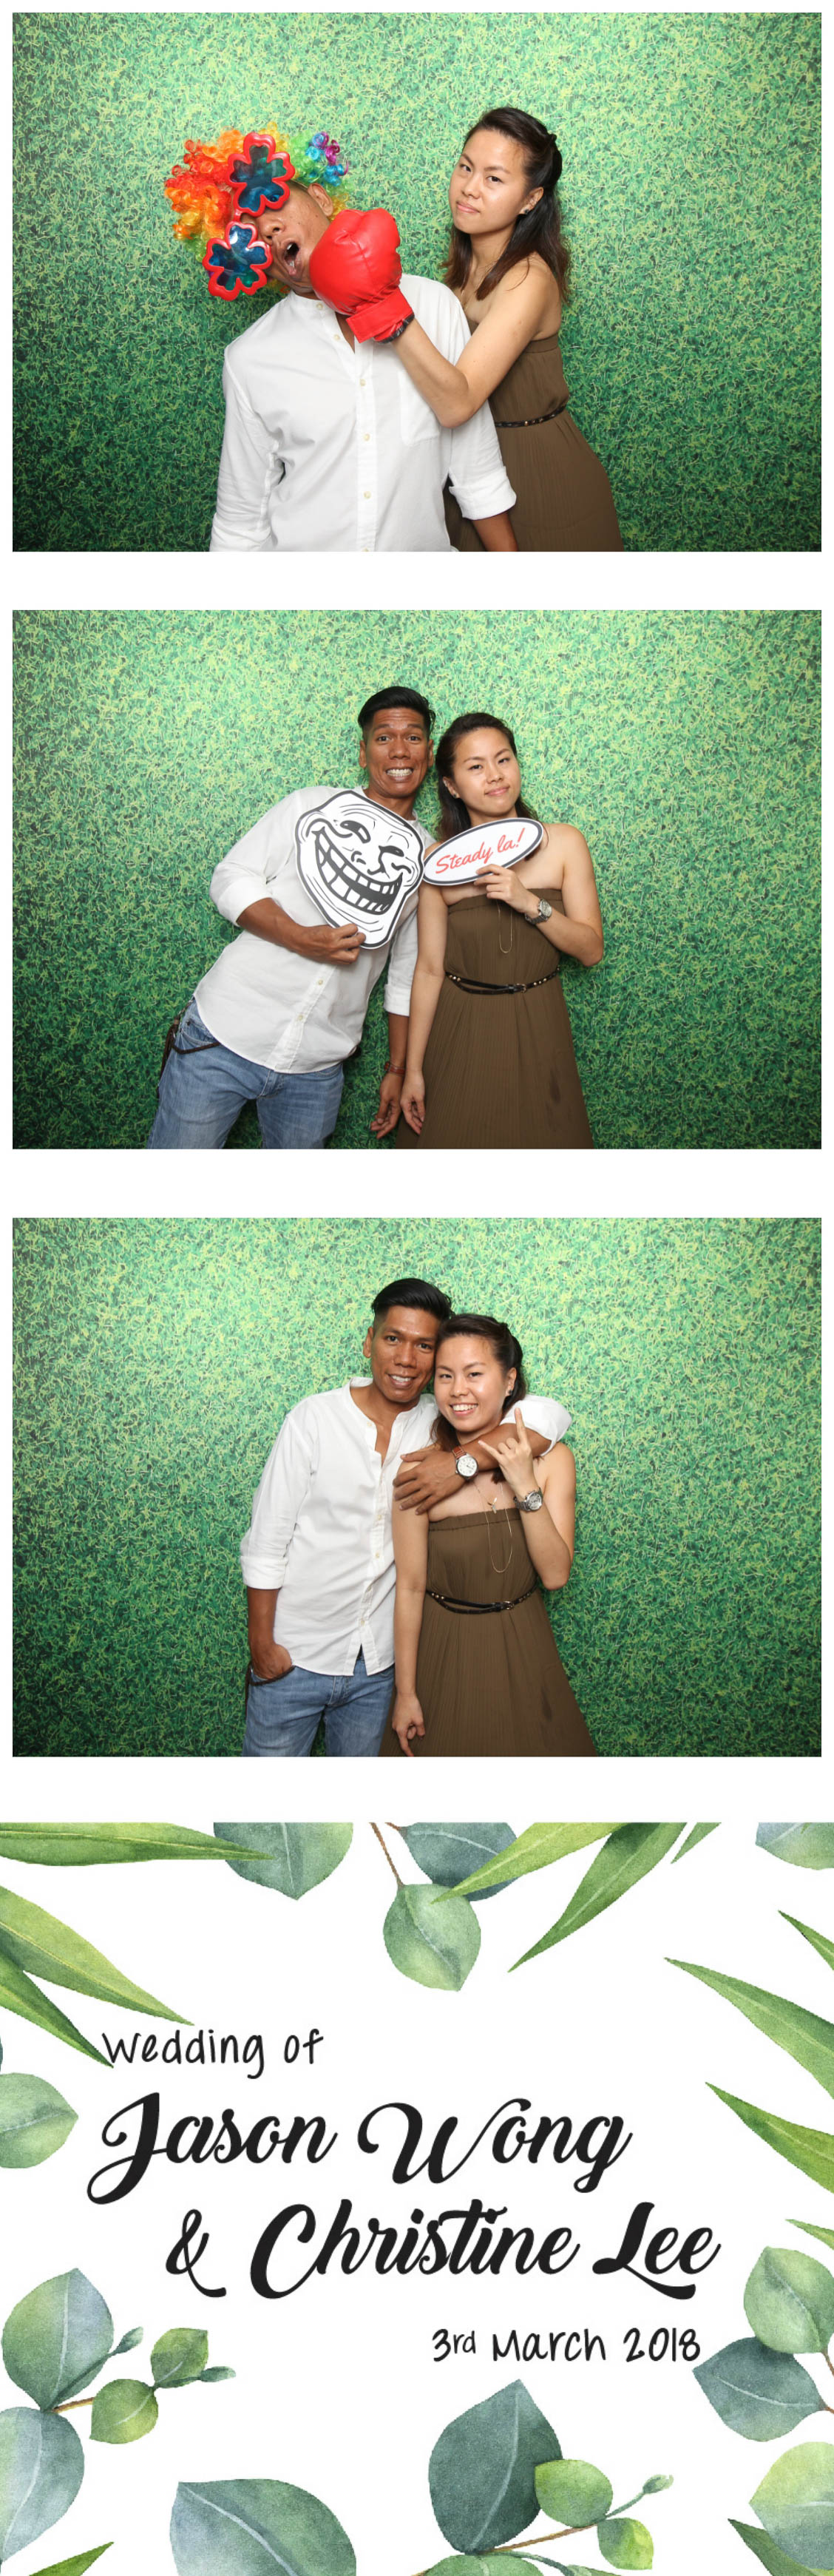 Photobooth 0302-19